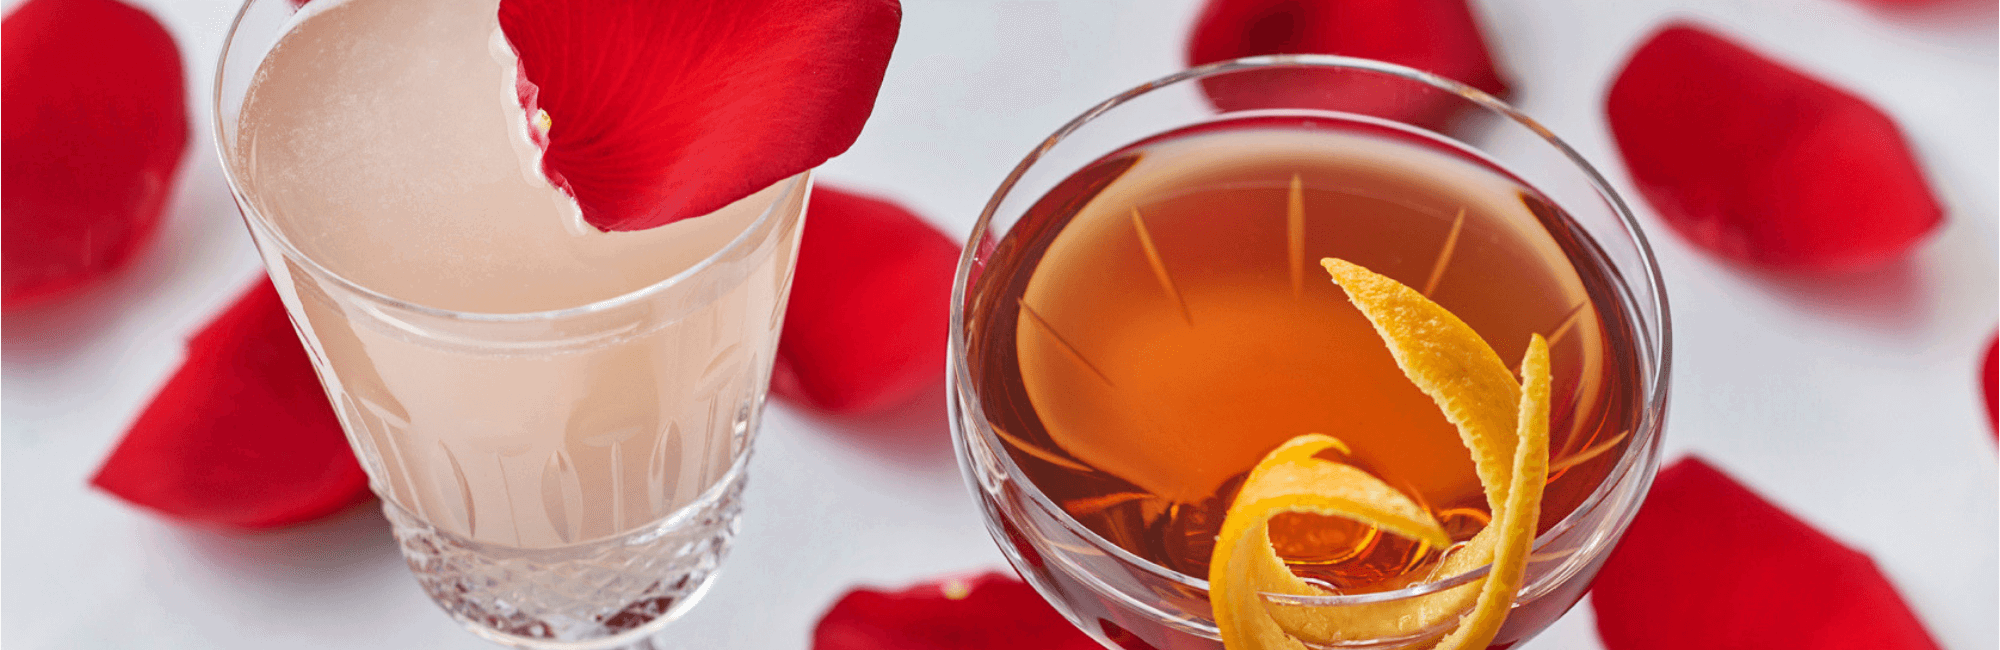 Valentine's Day cocktails at 34 Mayfair in Central London